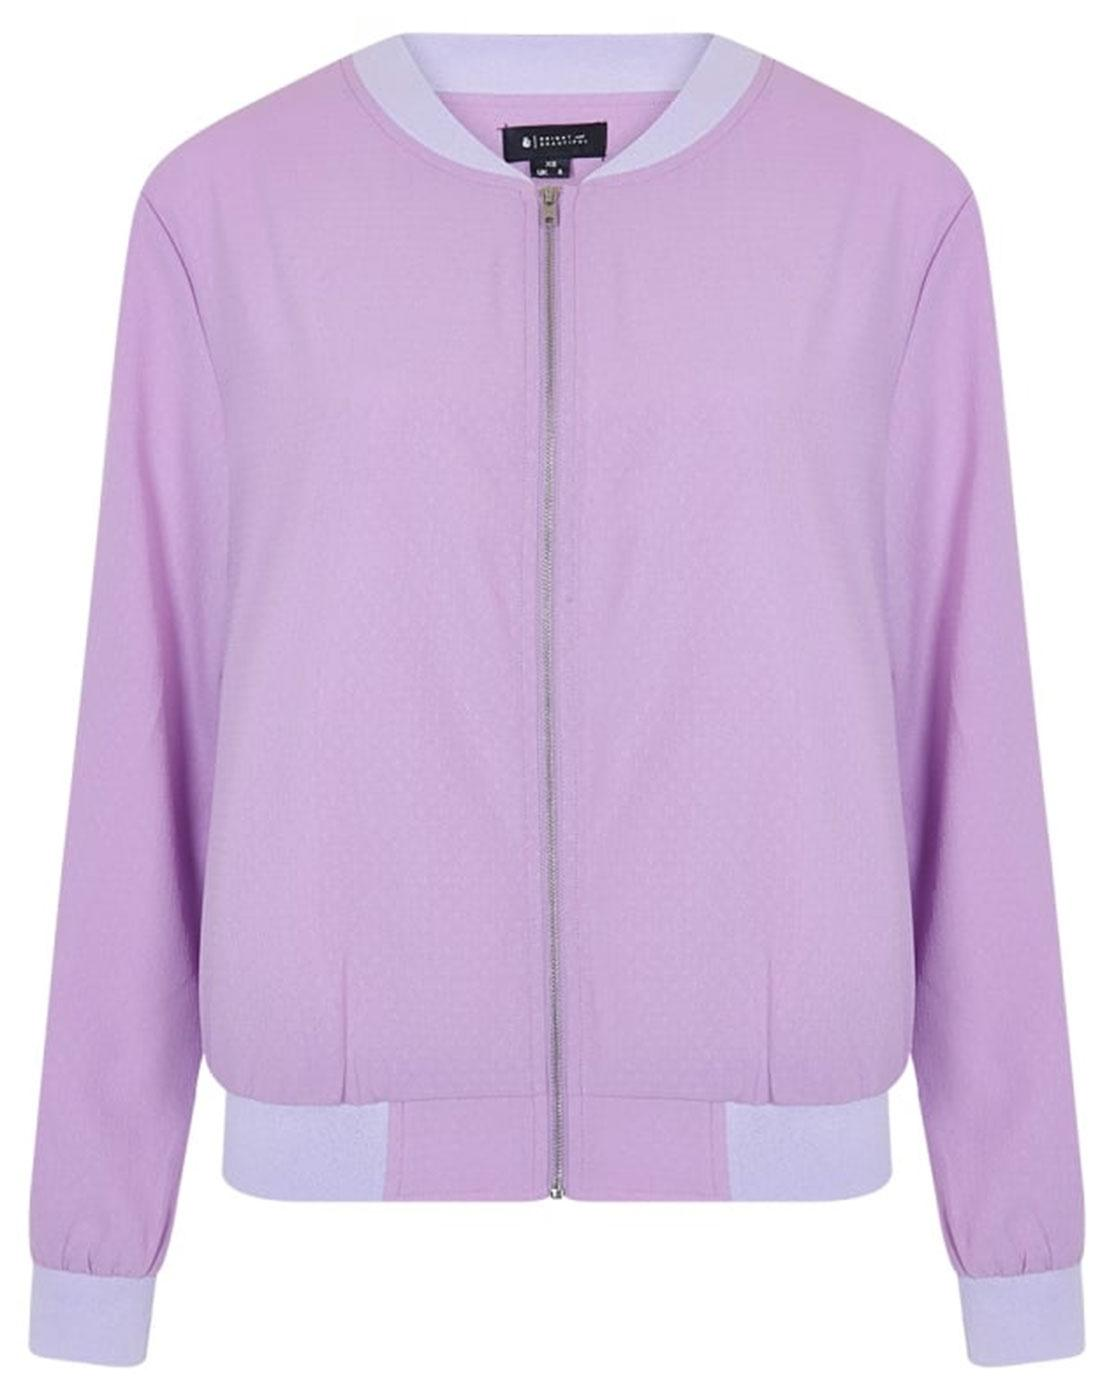 Tara BRIGHT & BEAUTIFUL Womens Retro Bomber Jacket